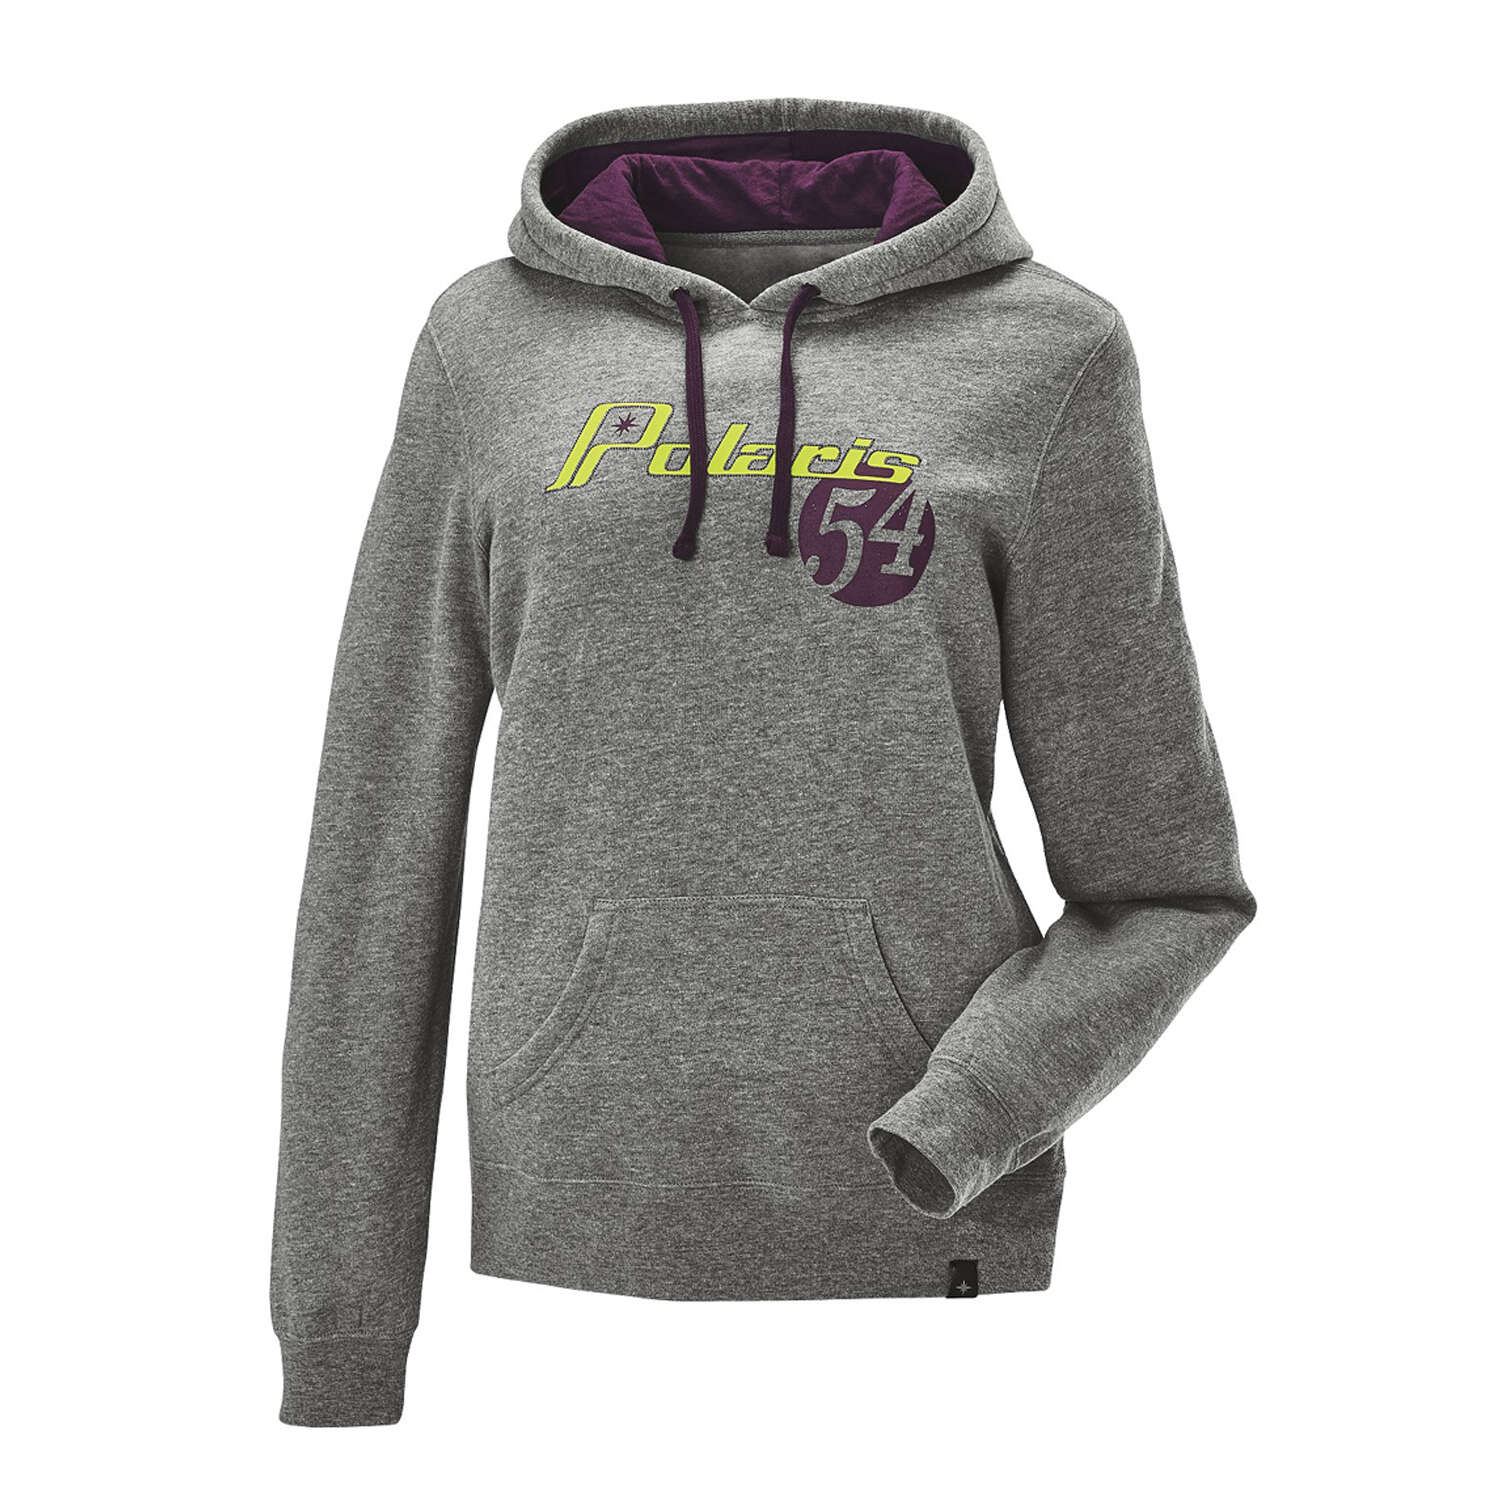 Women's Retro Hoodie Sweatshirt with Polaris® Logo, Gray